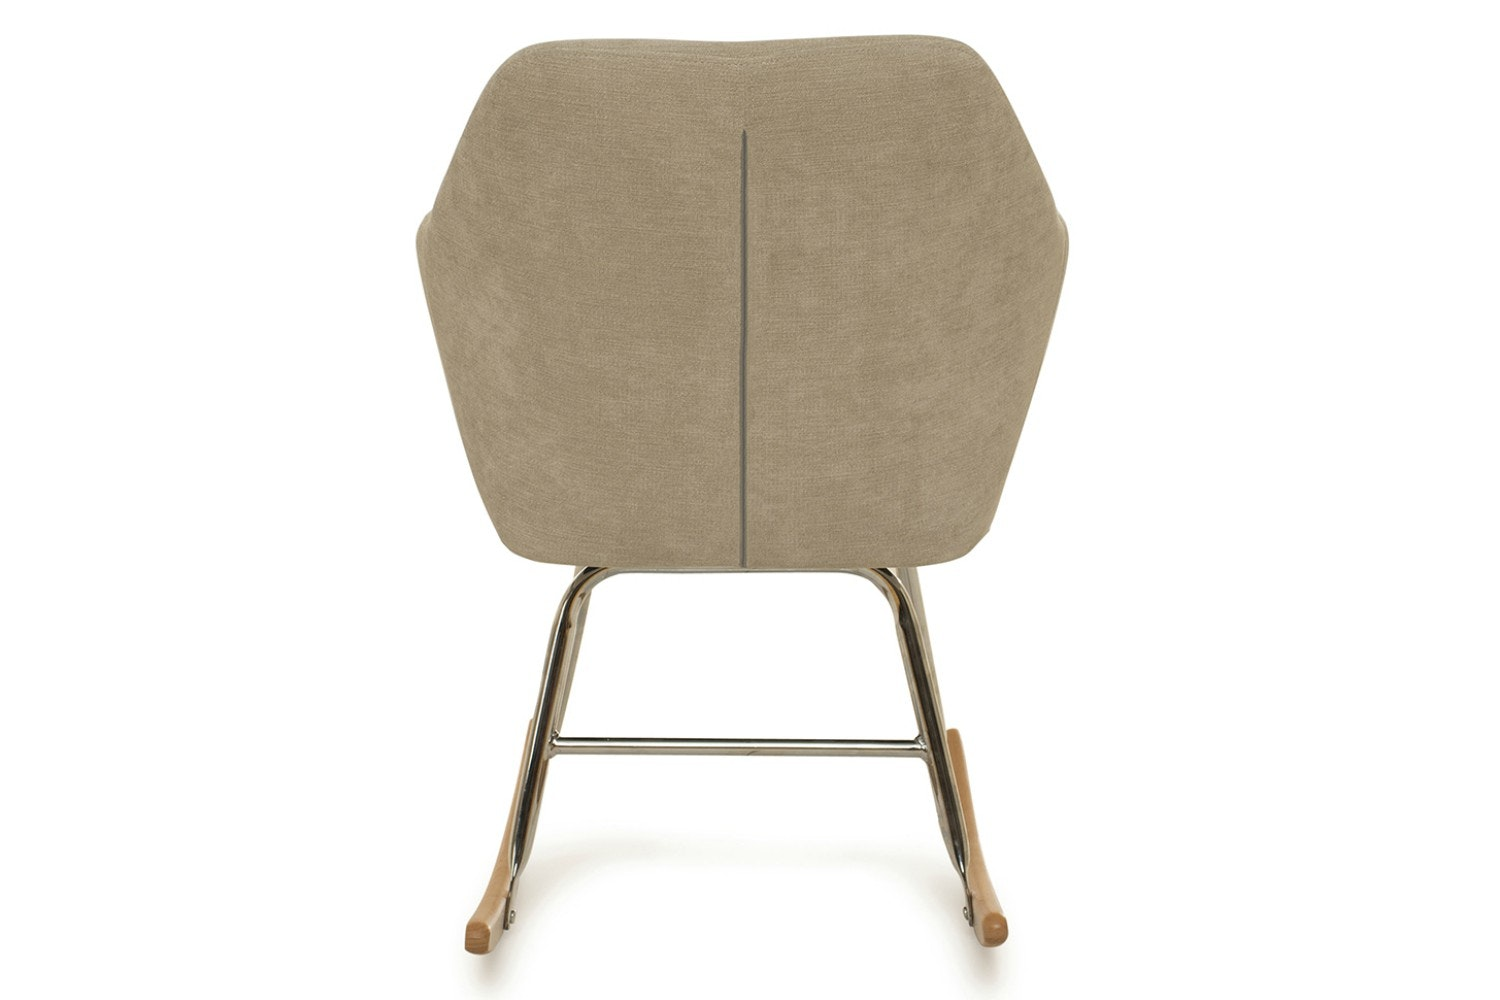 Emilia Bedroom Rocker Armchair | Sand